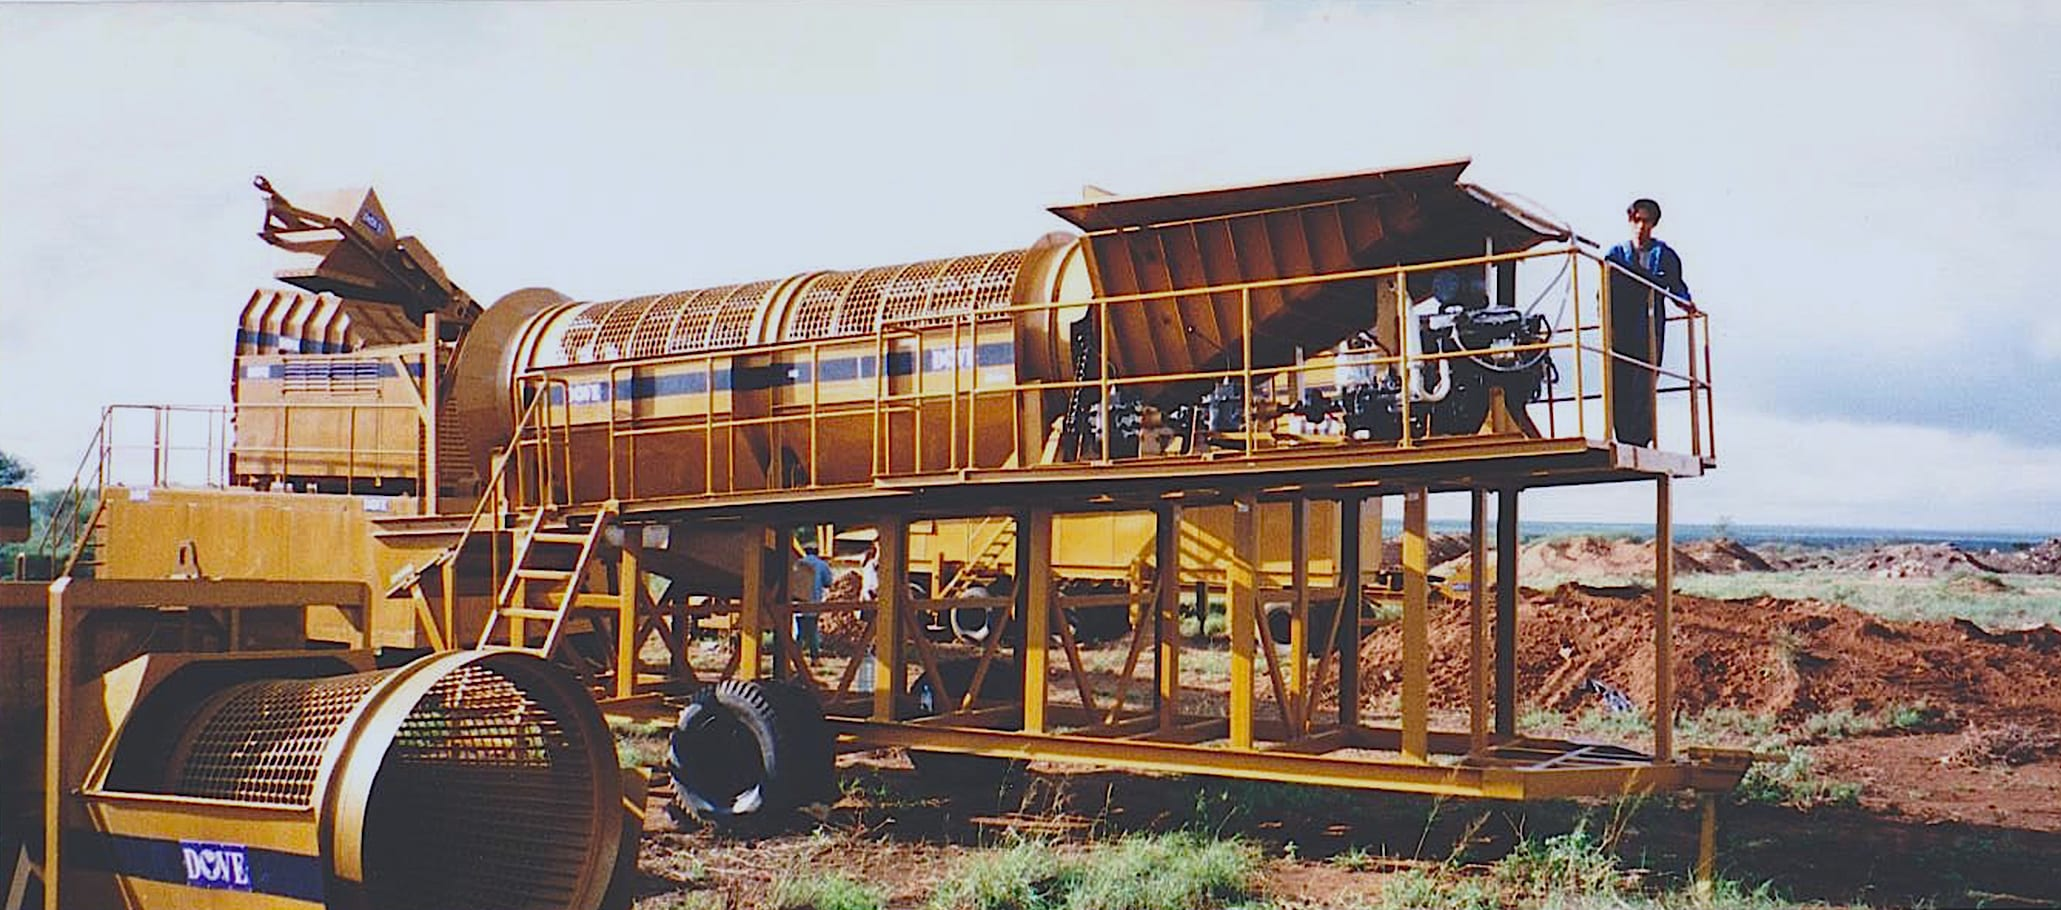 DOVE MINING EQUIPMENT GALLERY